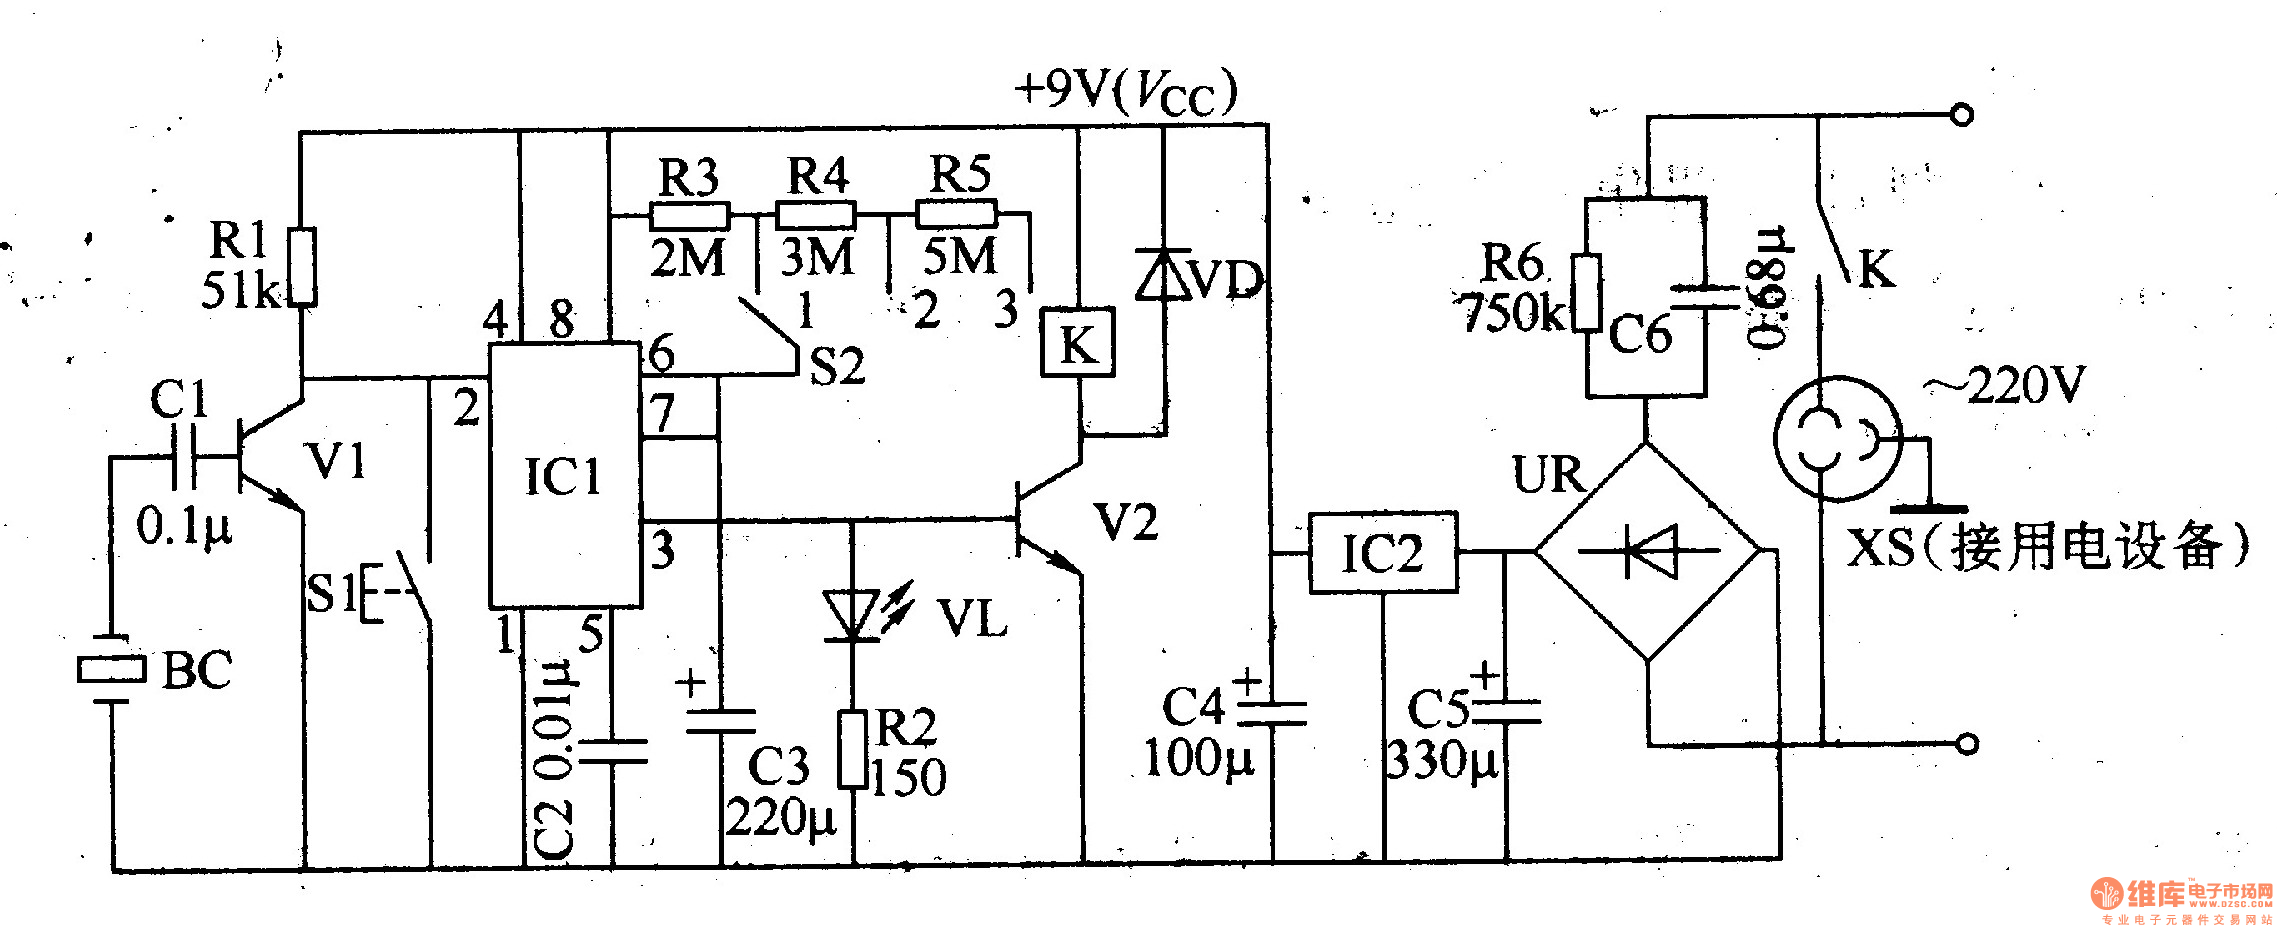 primary timing controller 2 - time control - control circuit - circuit diagram